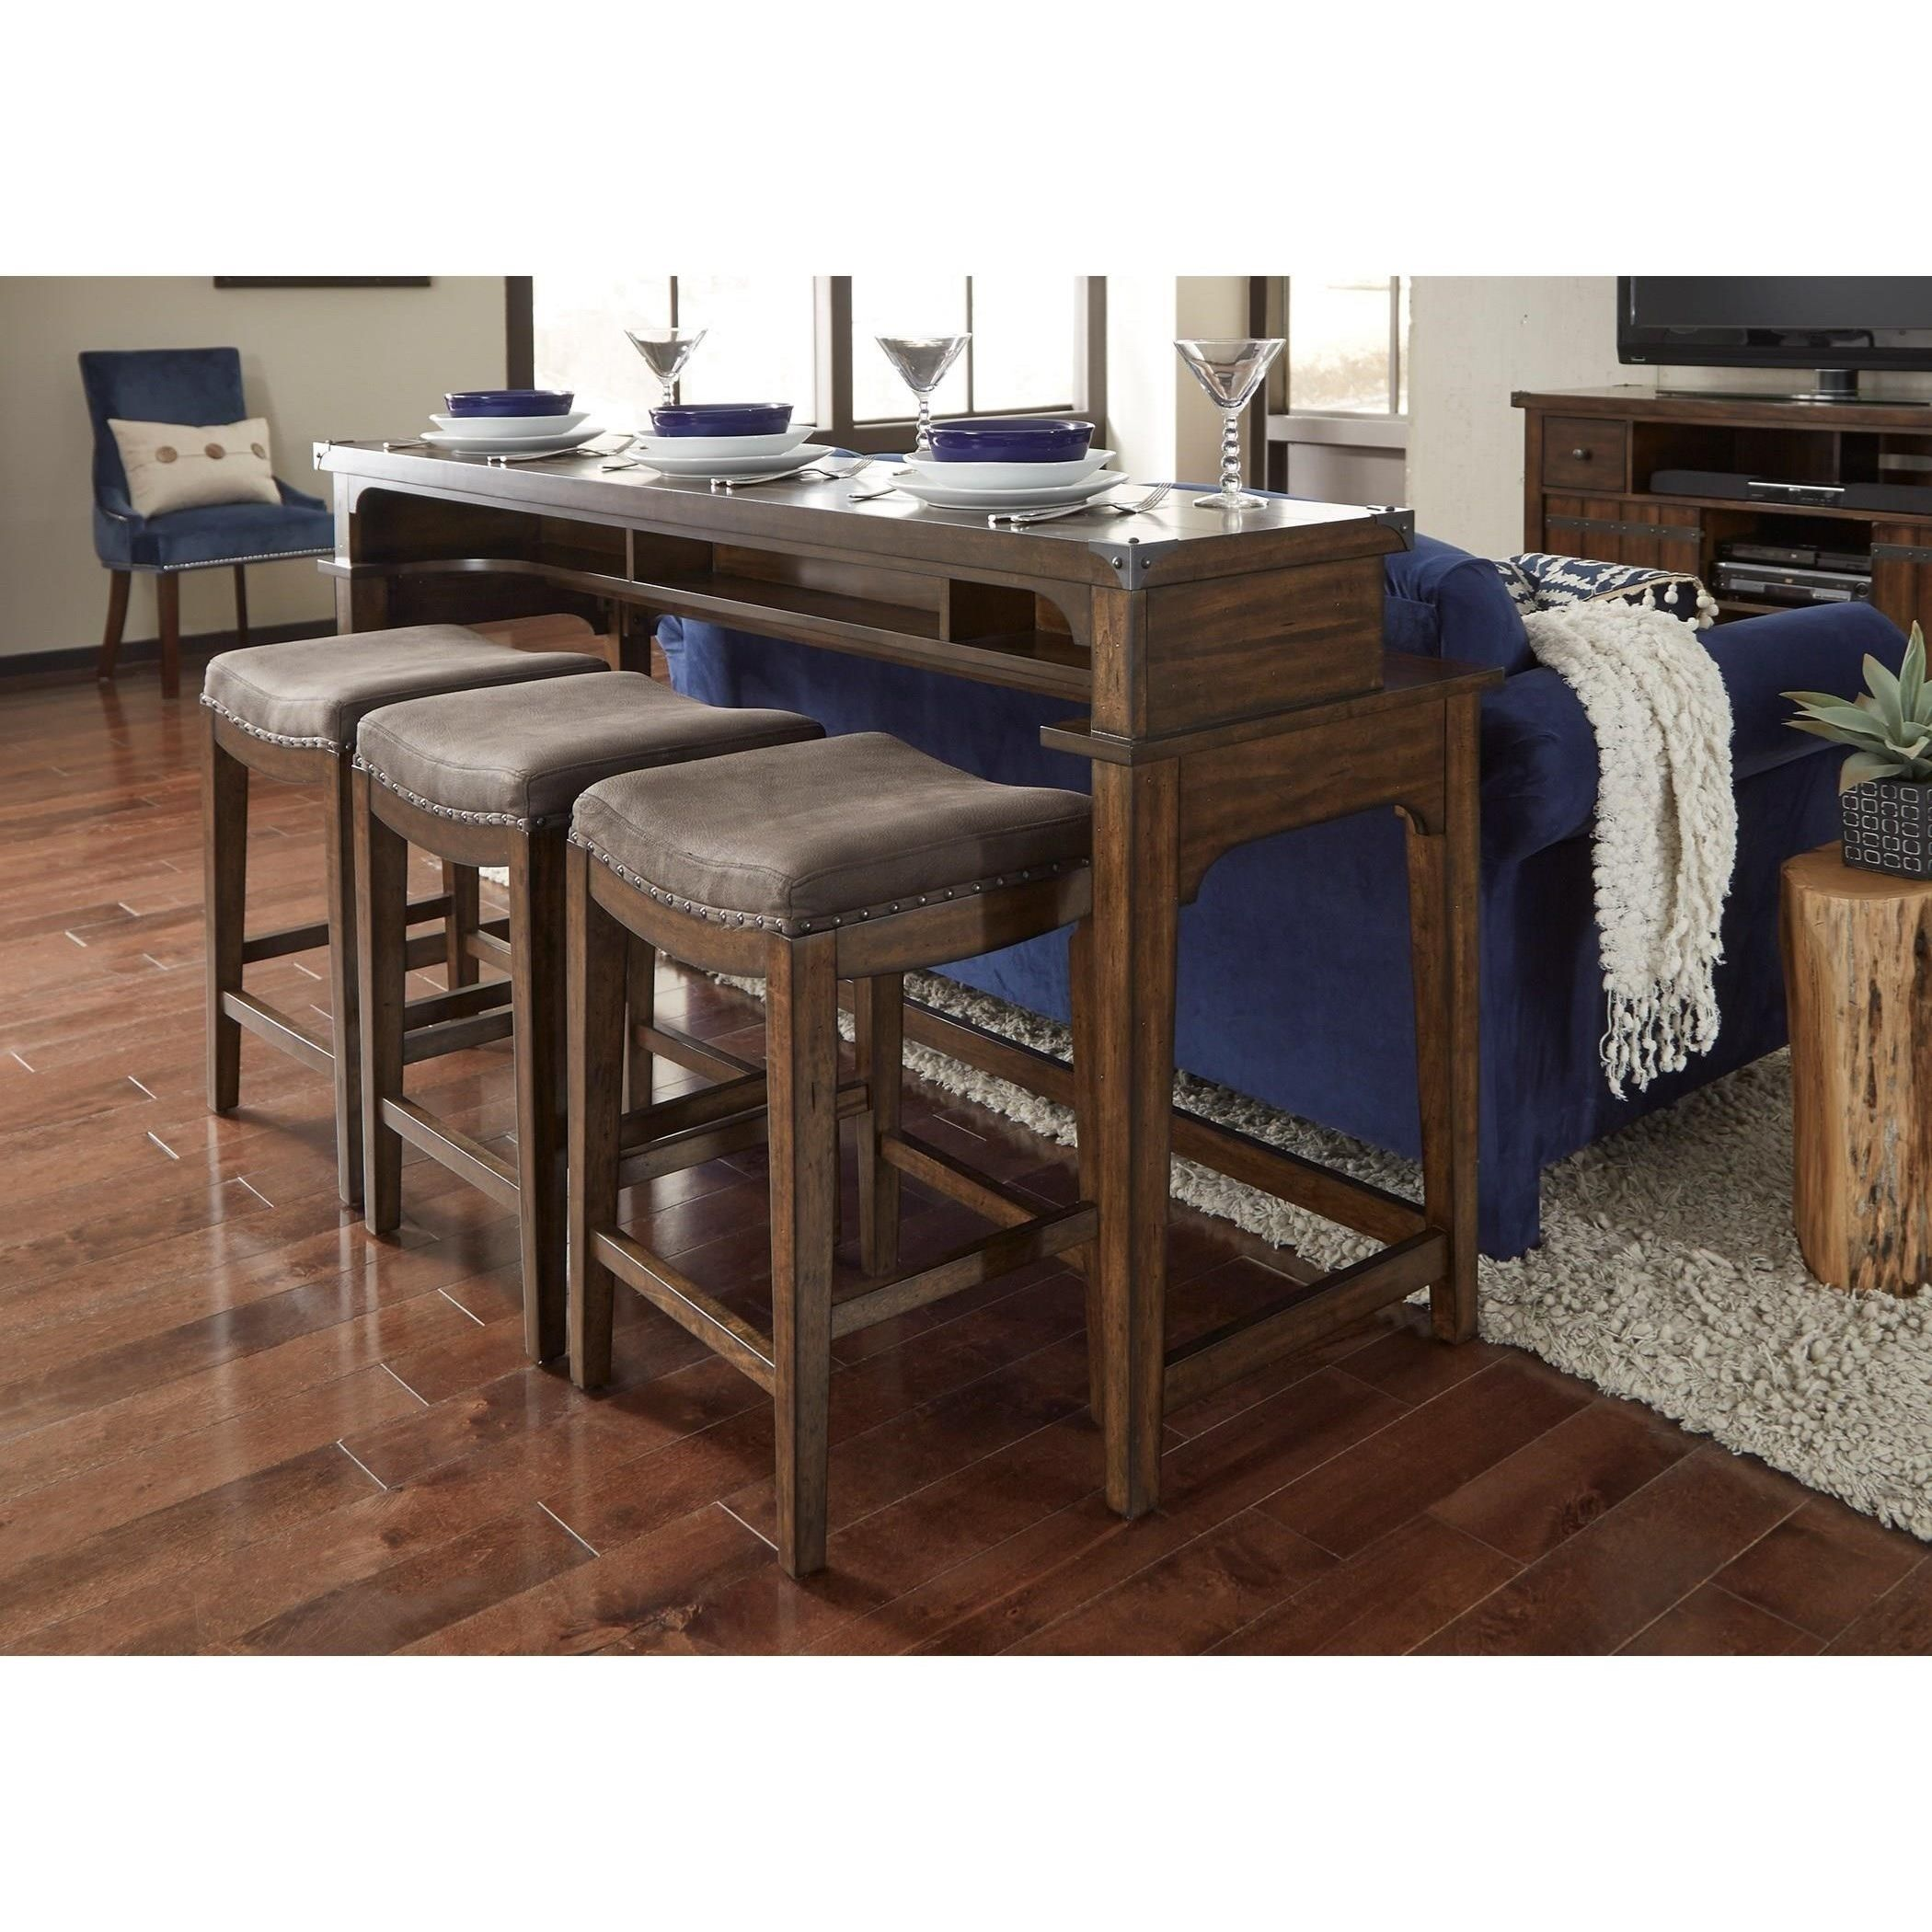 Aspen Skies Counter Height Sofa Table And Stool Set By